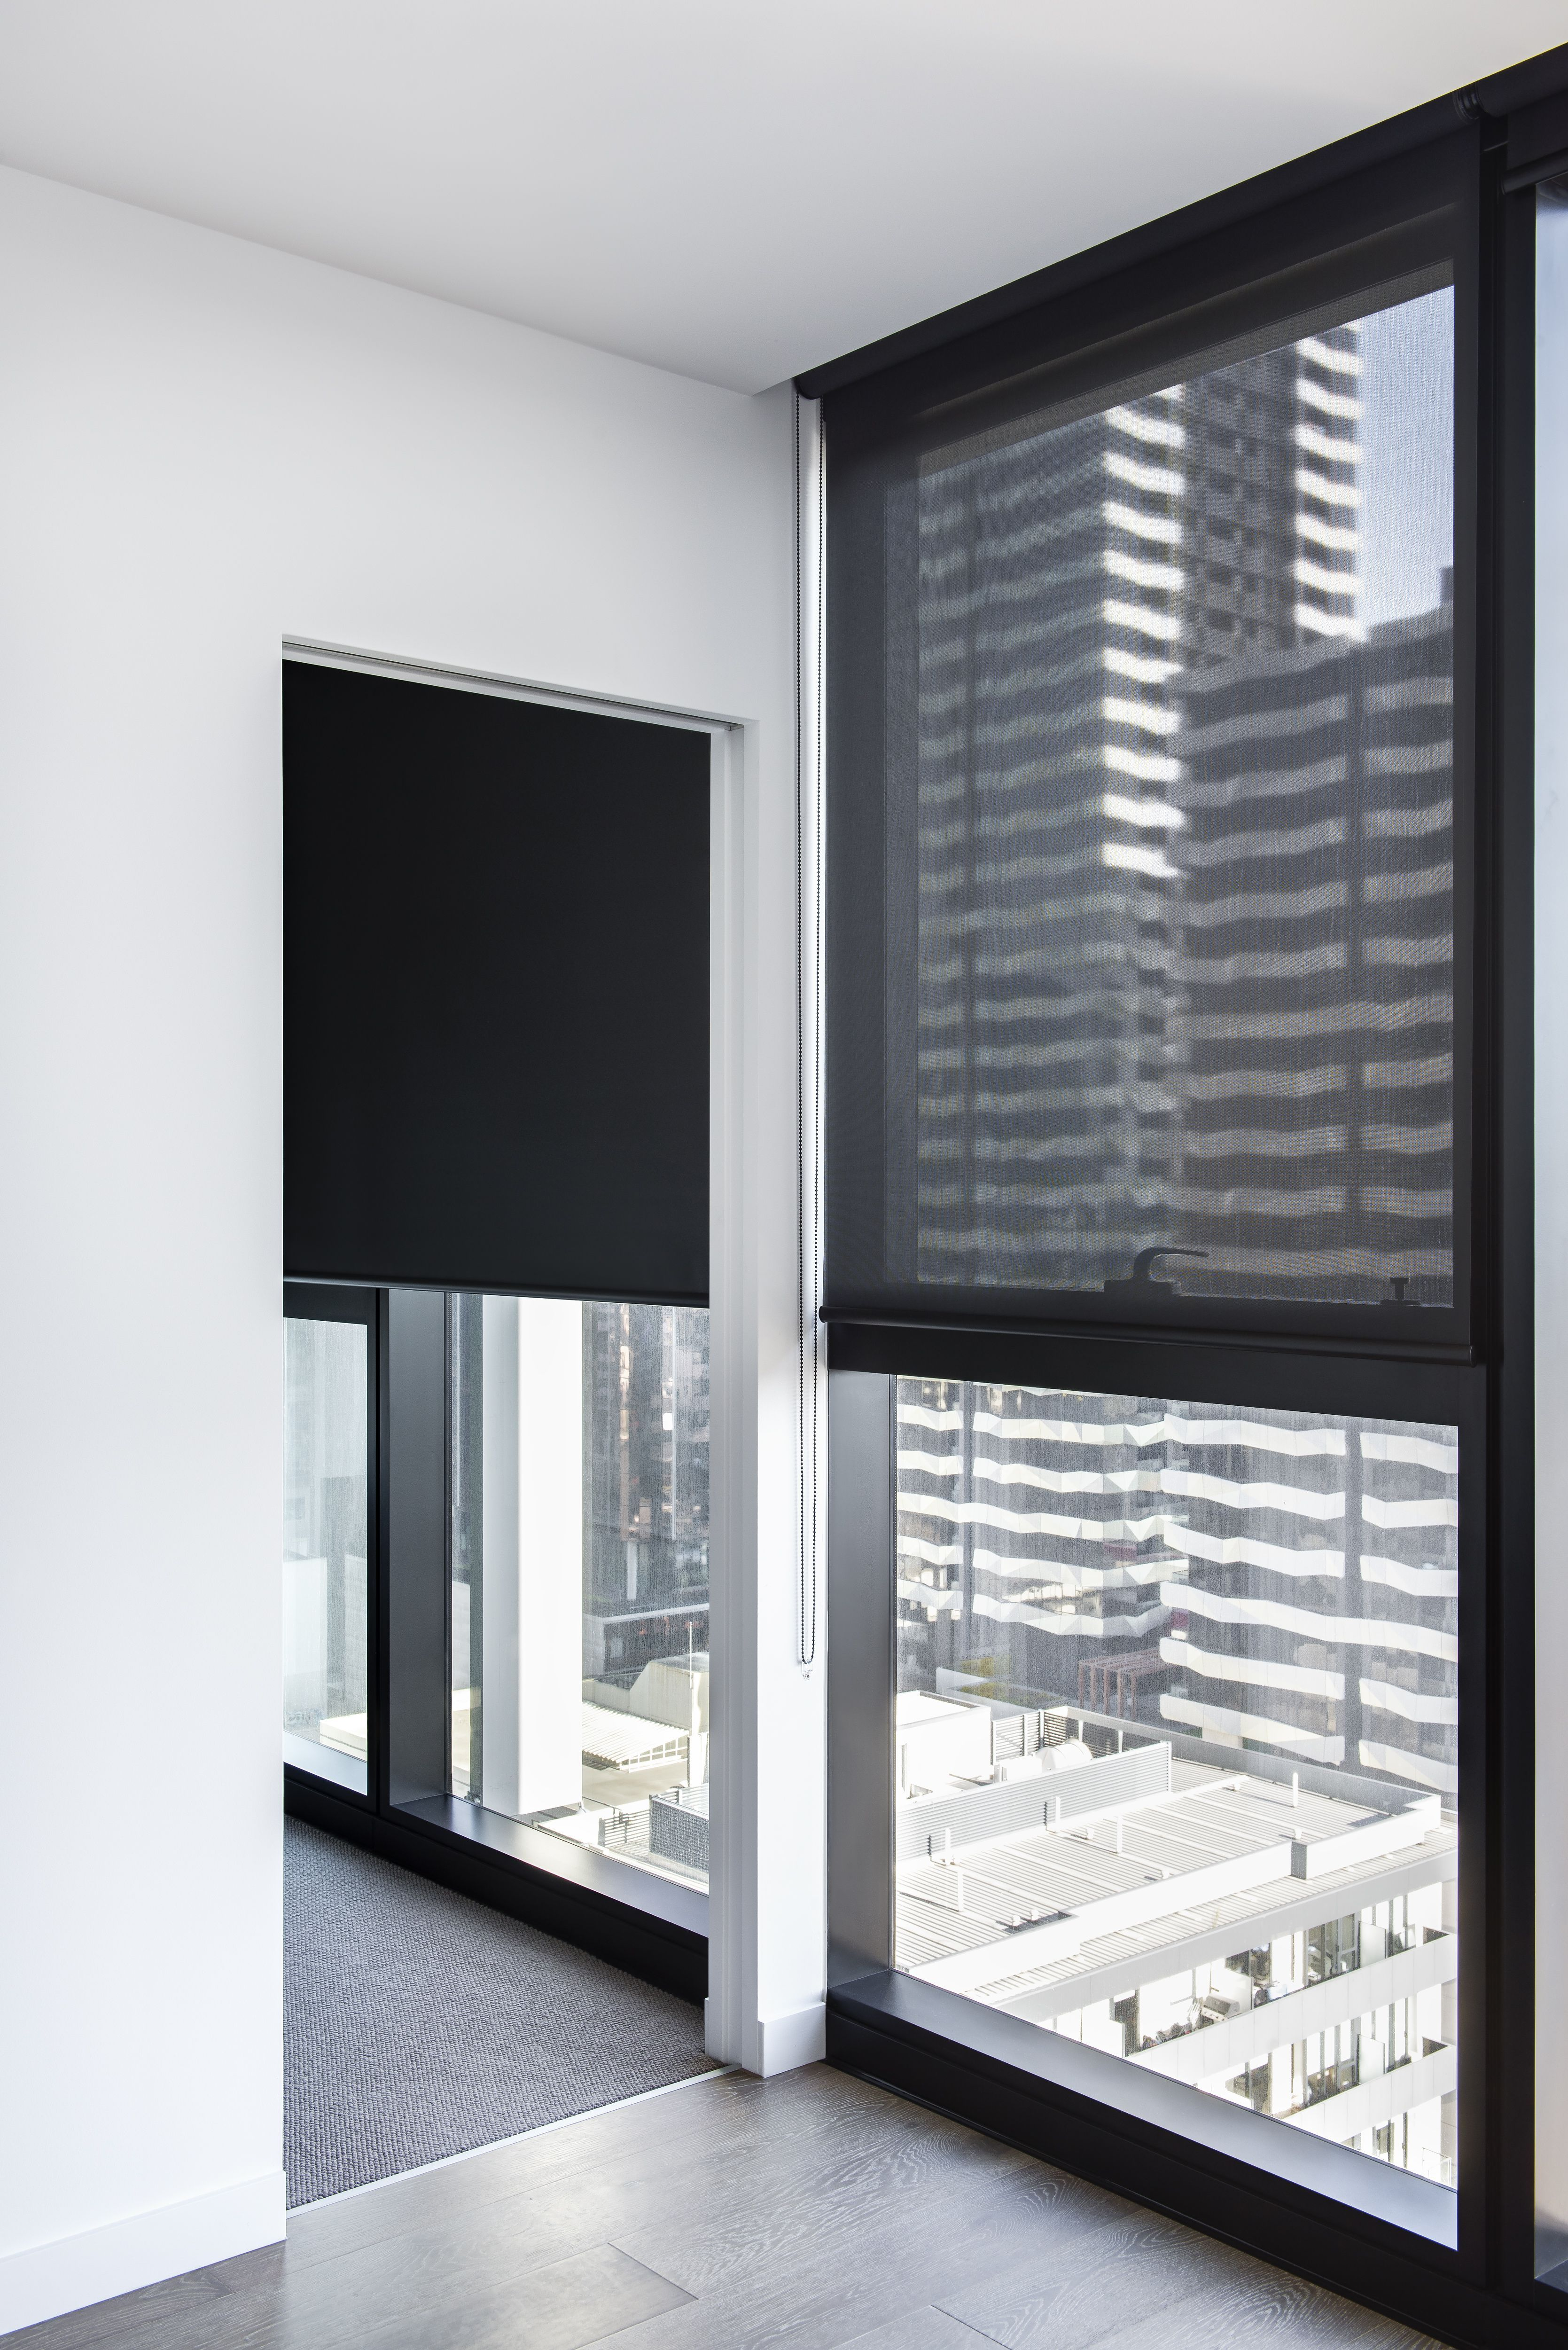 E Screen Blinds Single Roller Blinds In Solitaire Onyx Blockout Fabric Left